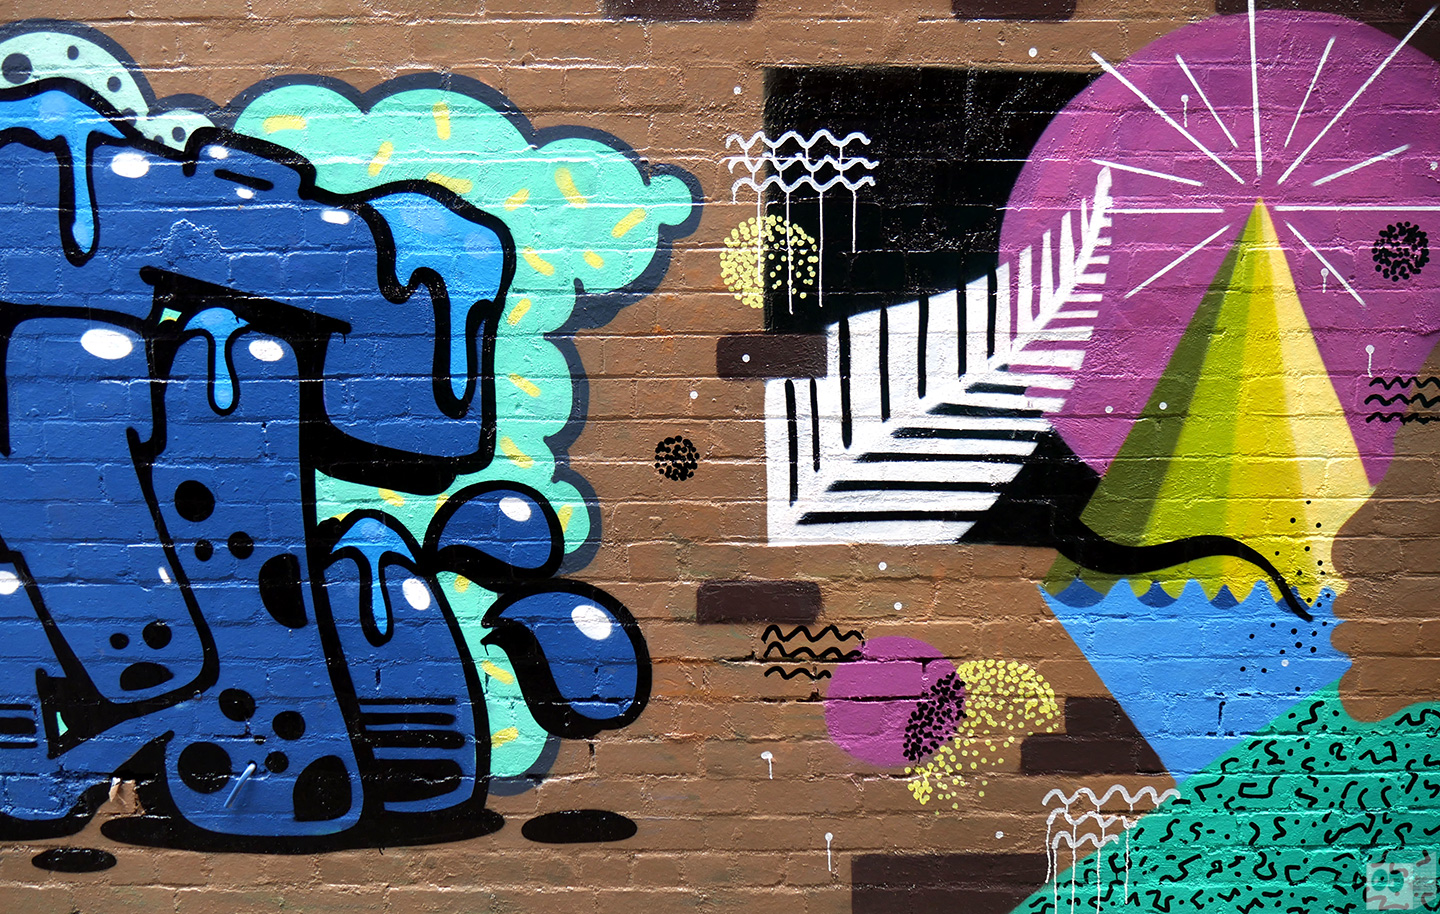 the-fourth-walls-melbourne-graffiti-street-art-haunt-polar-fitzroy6